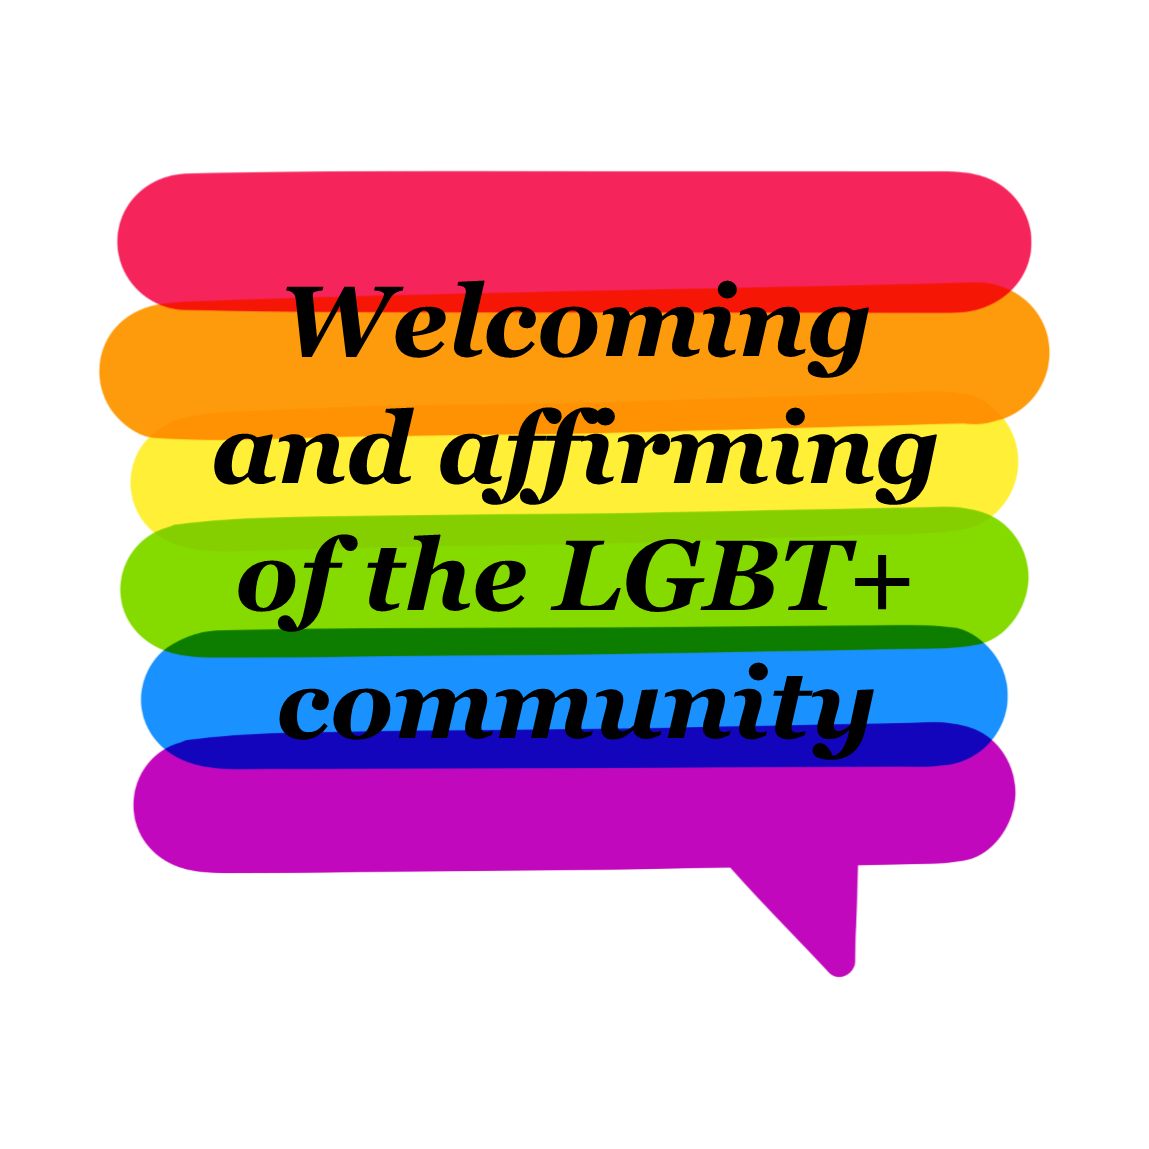 Welcoming and affirming of the LGBT+ community